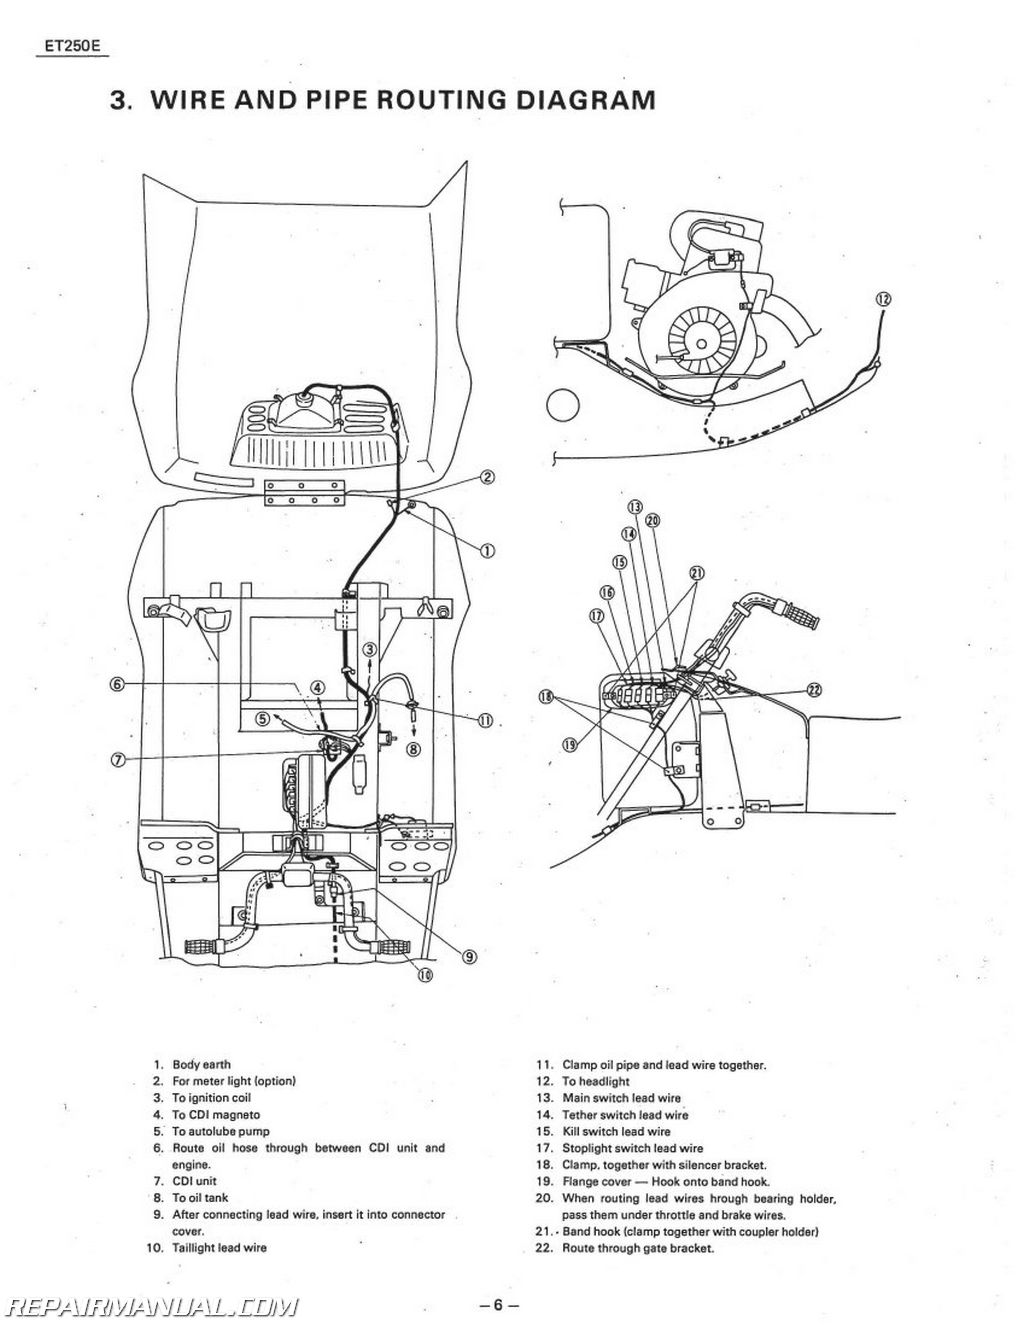 yamaha snowmobile wiring harness diagram yamaha 400 wiring harness diagram 1978-1981 yamaha enticer et250 snowmobile service manual